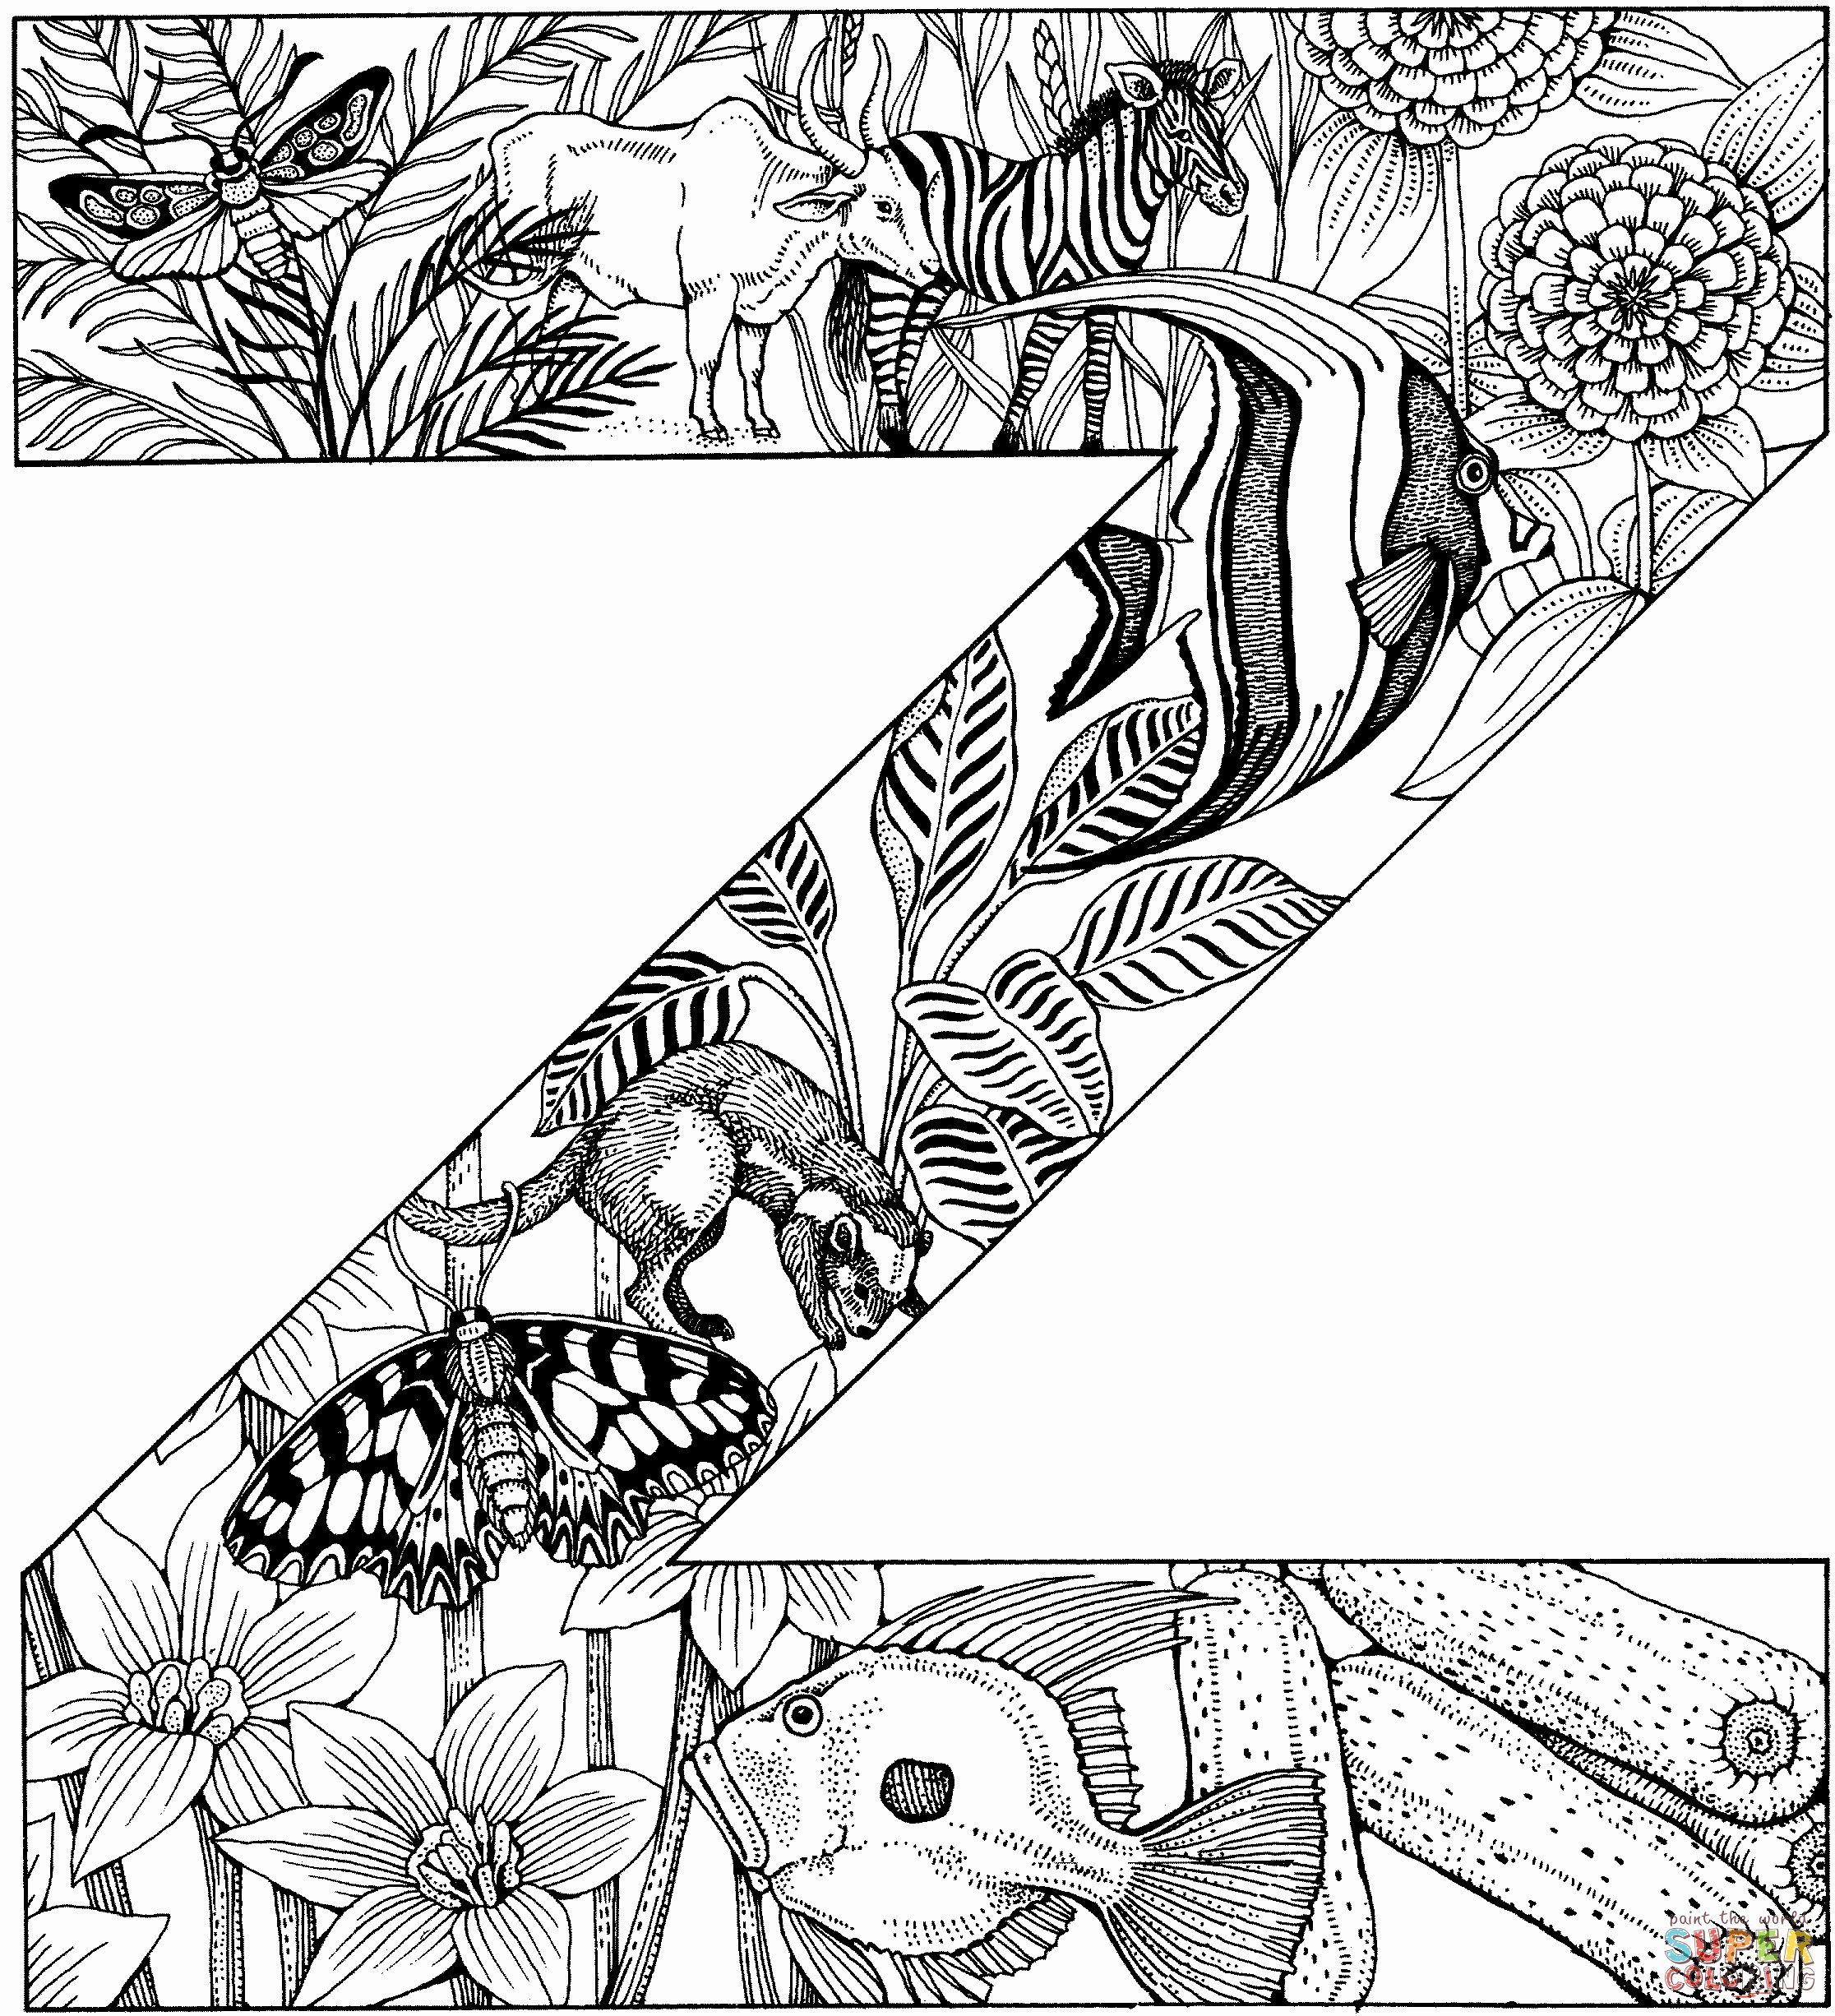 Letter Z Coloring Sheet Fresh Letter Z With Animals Coloring Page